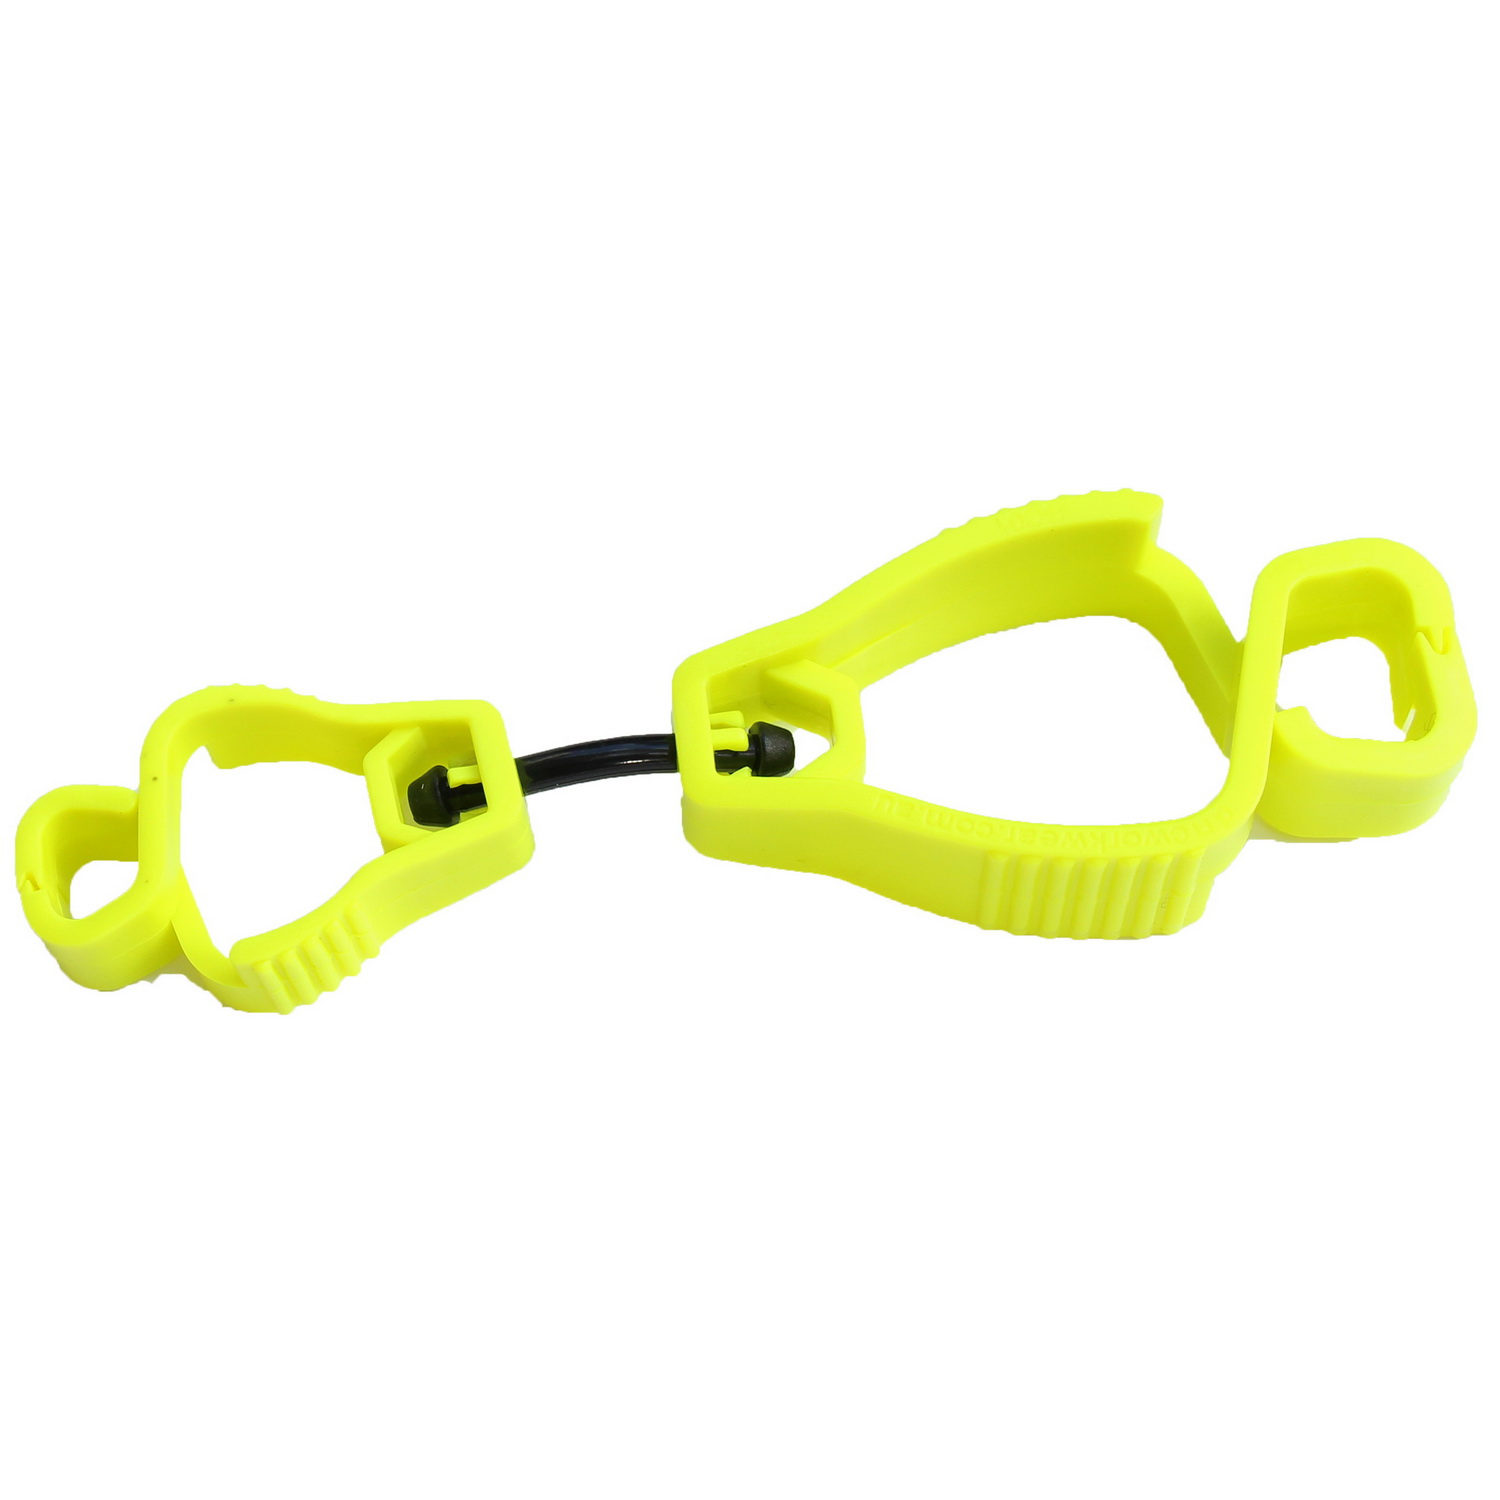 GLOVE GUARD CLIP YELLOW PLASTIC